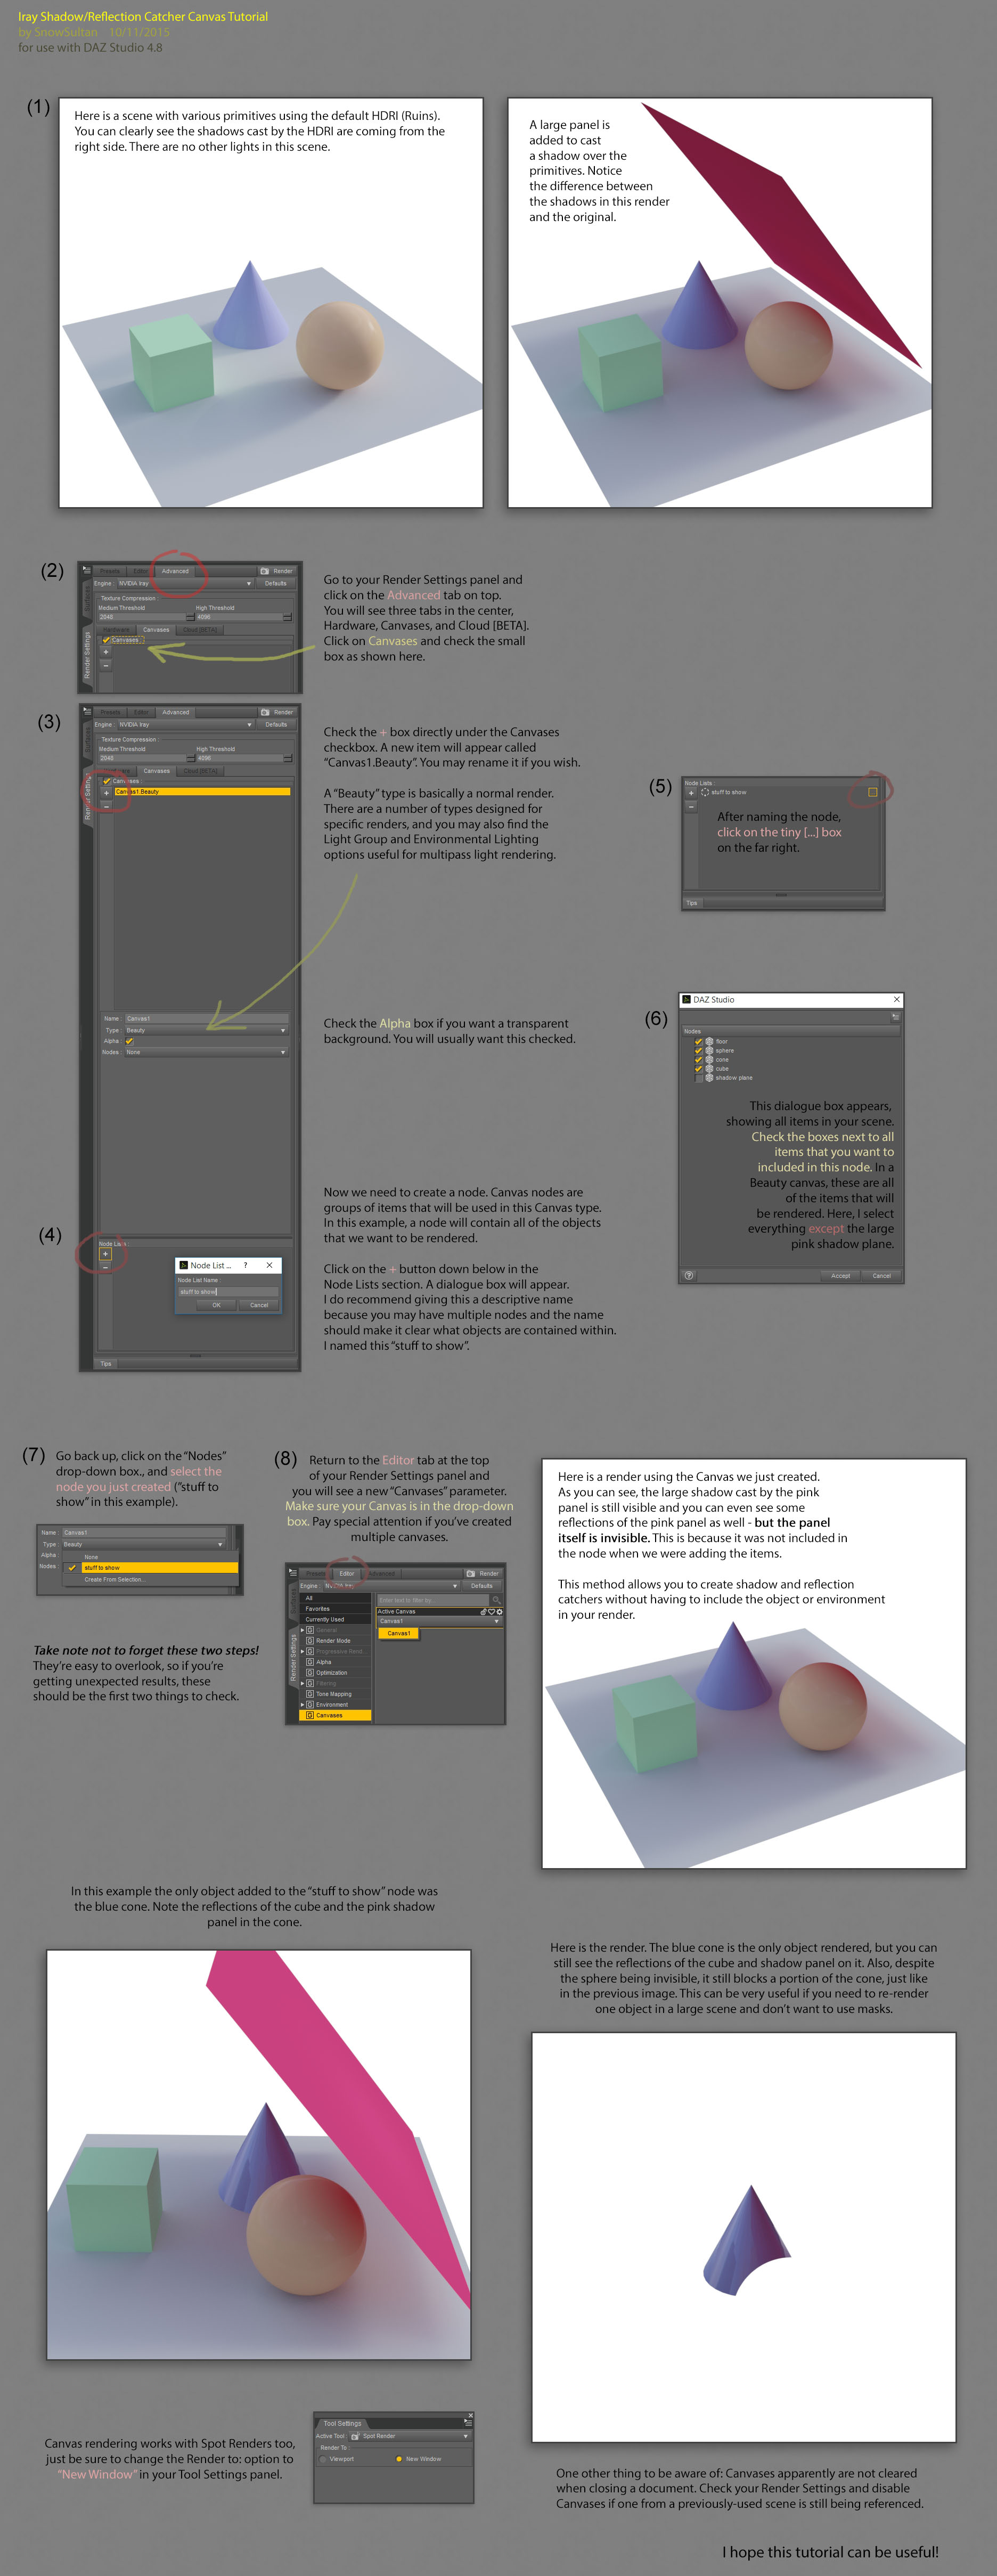 Iray canvas tutorial by snowsultan on deviantart iray canvas tutorial by snowsultan iray canvas tutorial by snowsultan baditri Image collections